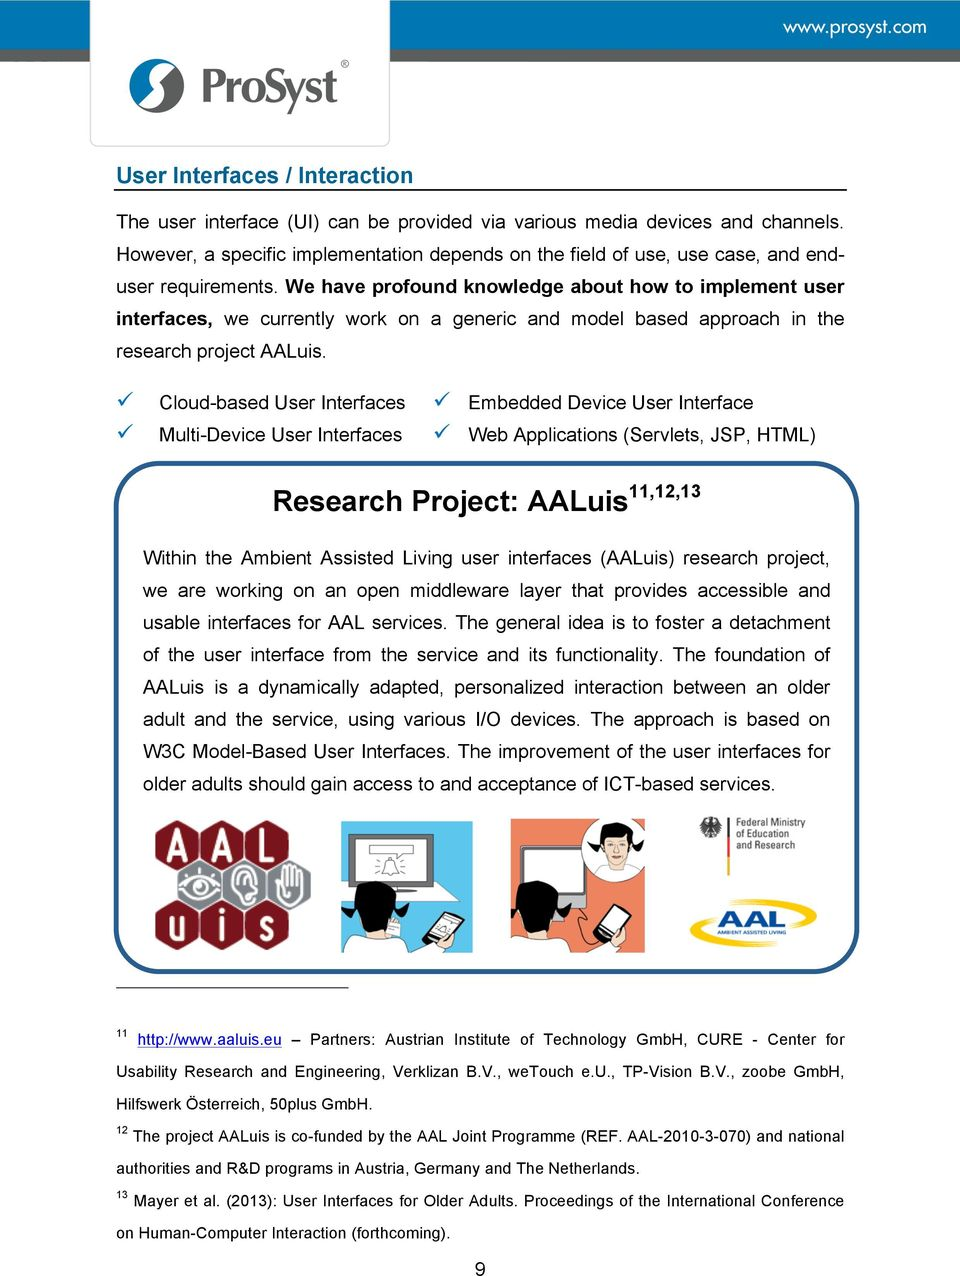 We have profound knowledge about how to implement user interfaces, we currently work on a generic and model based approach in the research project AALuis.